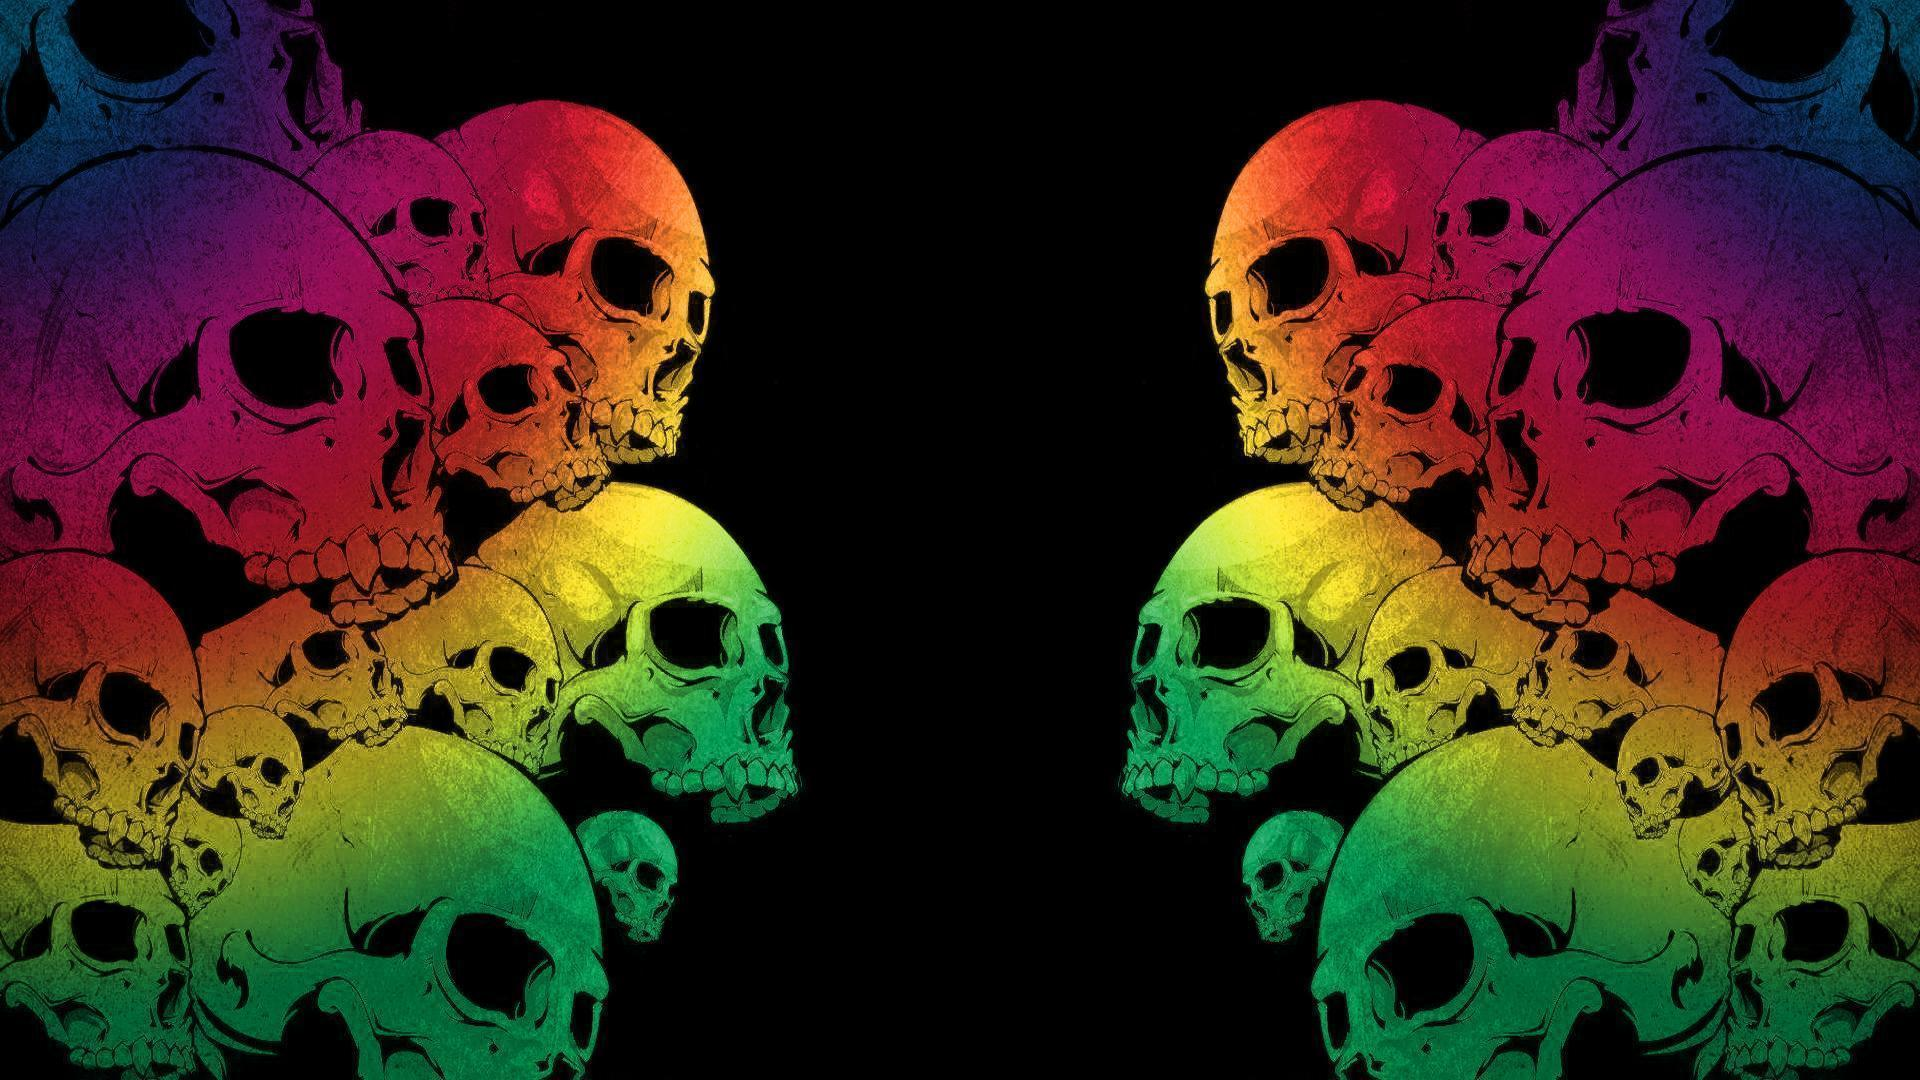 skull wallpaper wallpapers hd - photo #40